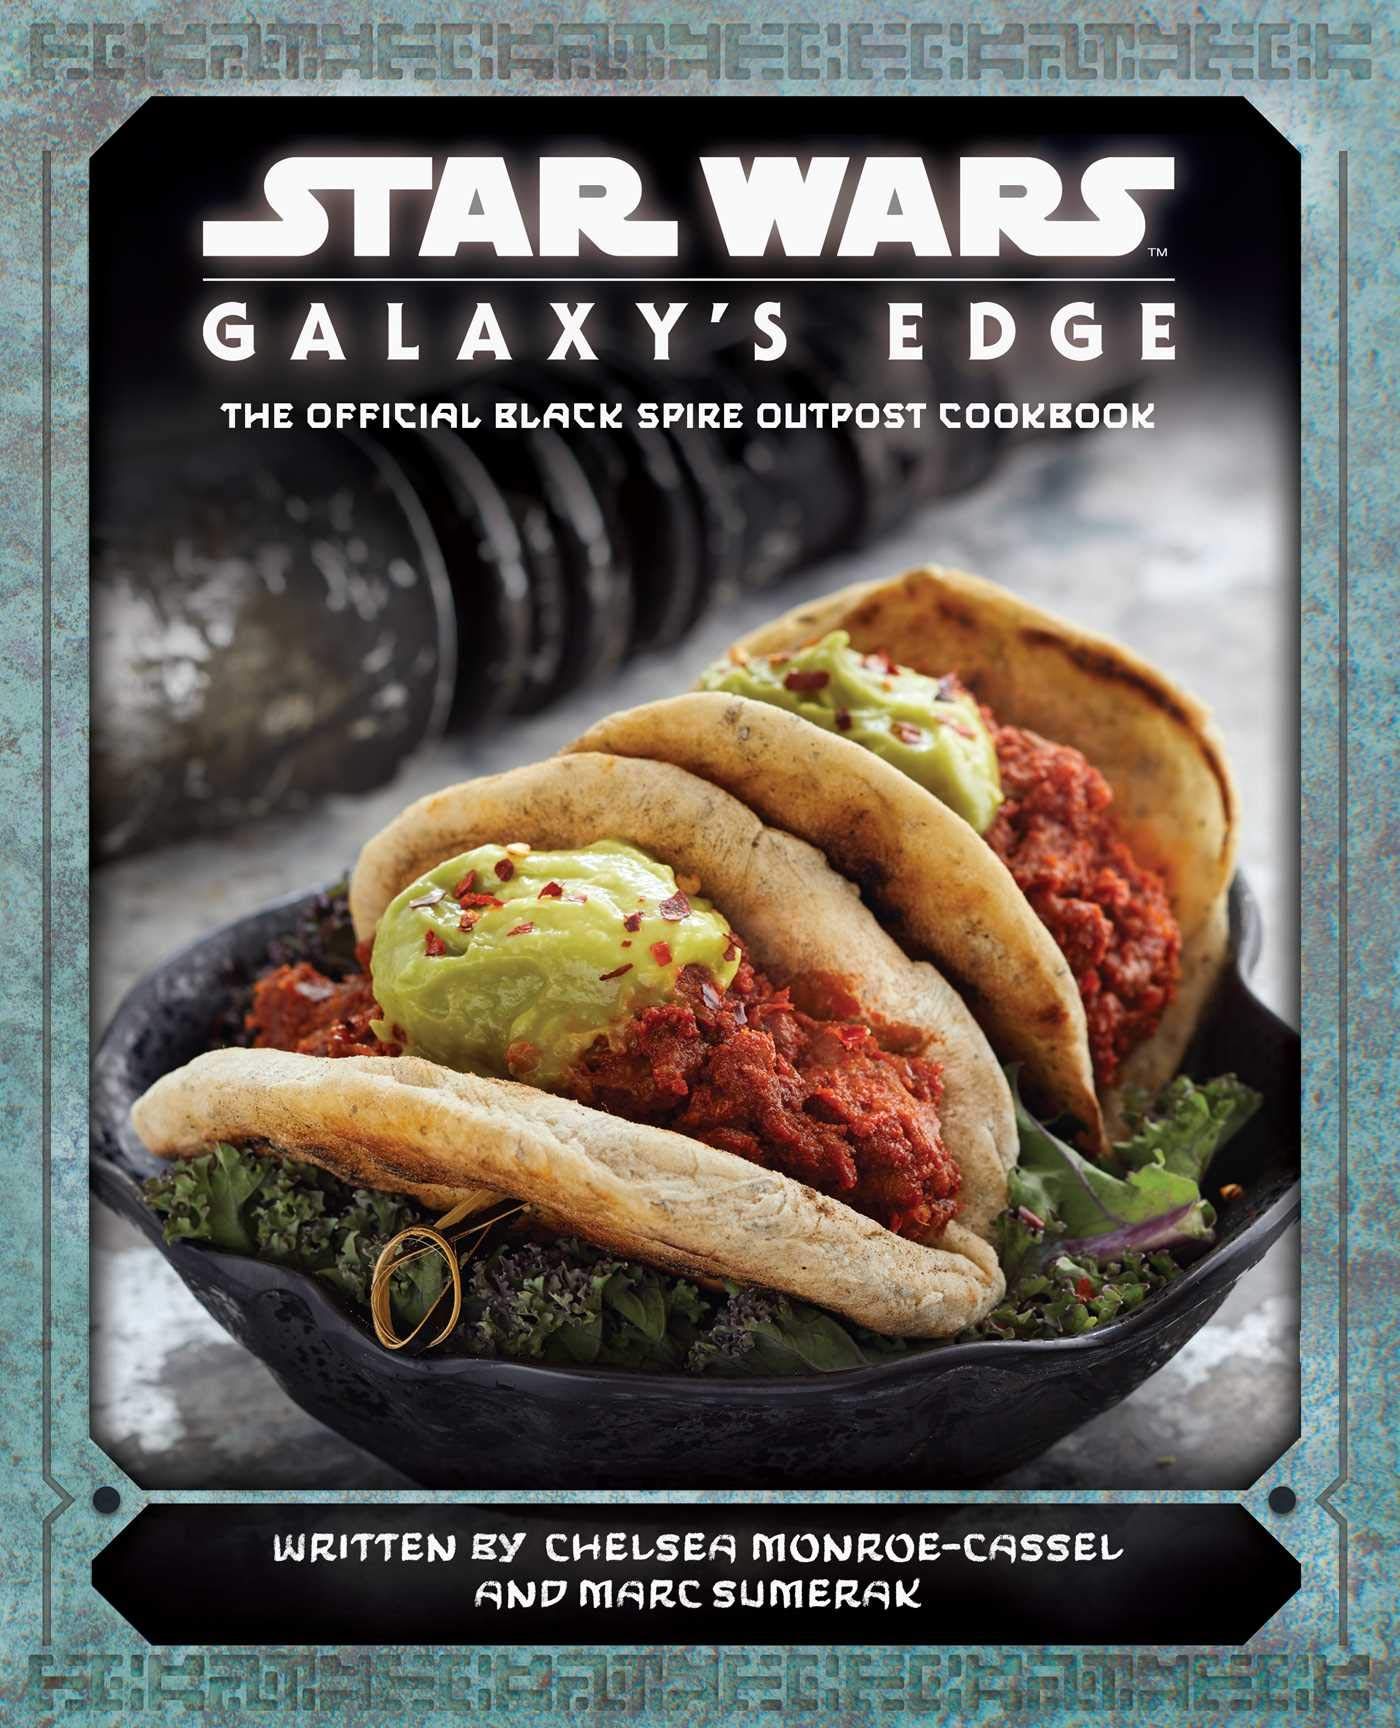 Star Wars: Galaxy's Edge: The Official Black Spire Outpost Cookbook by Insight Editions